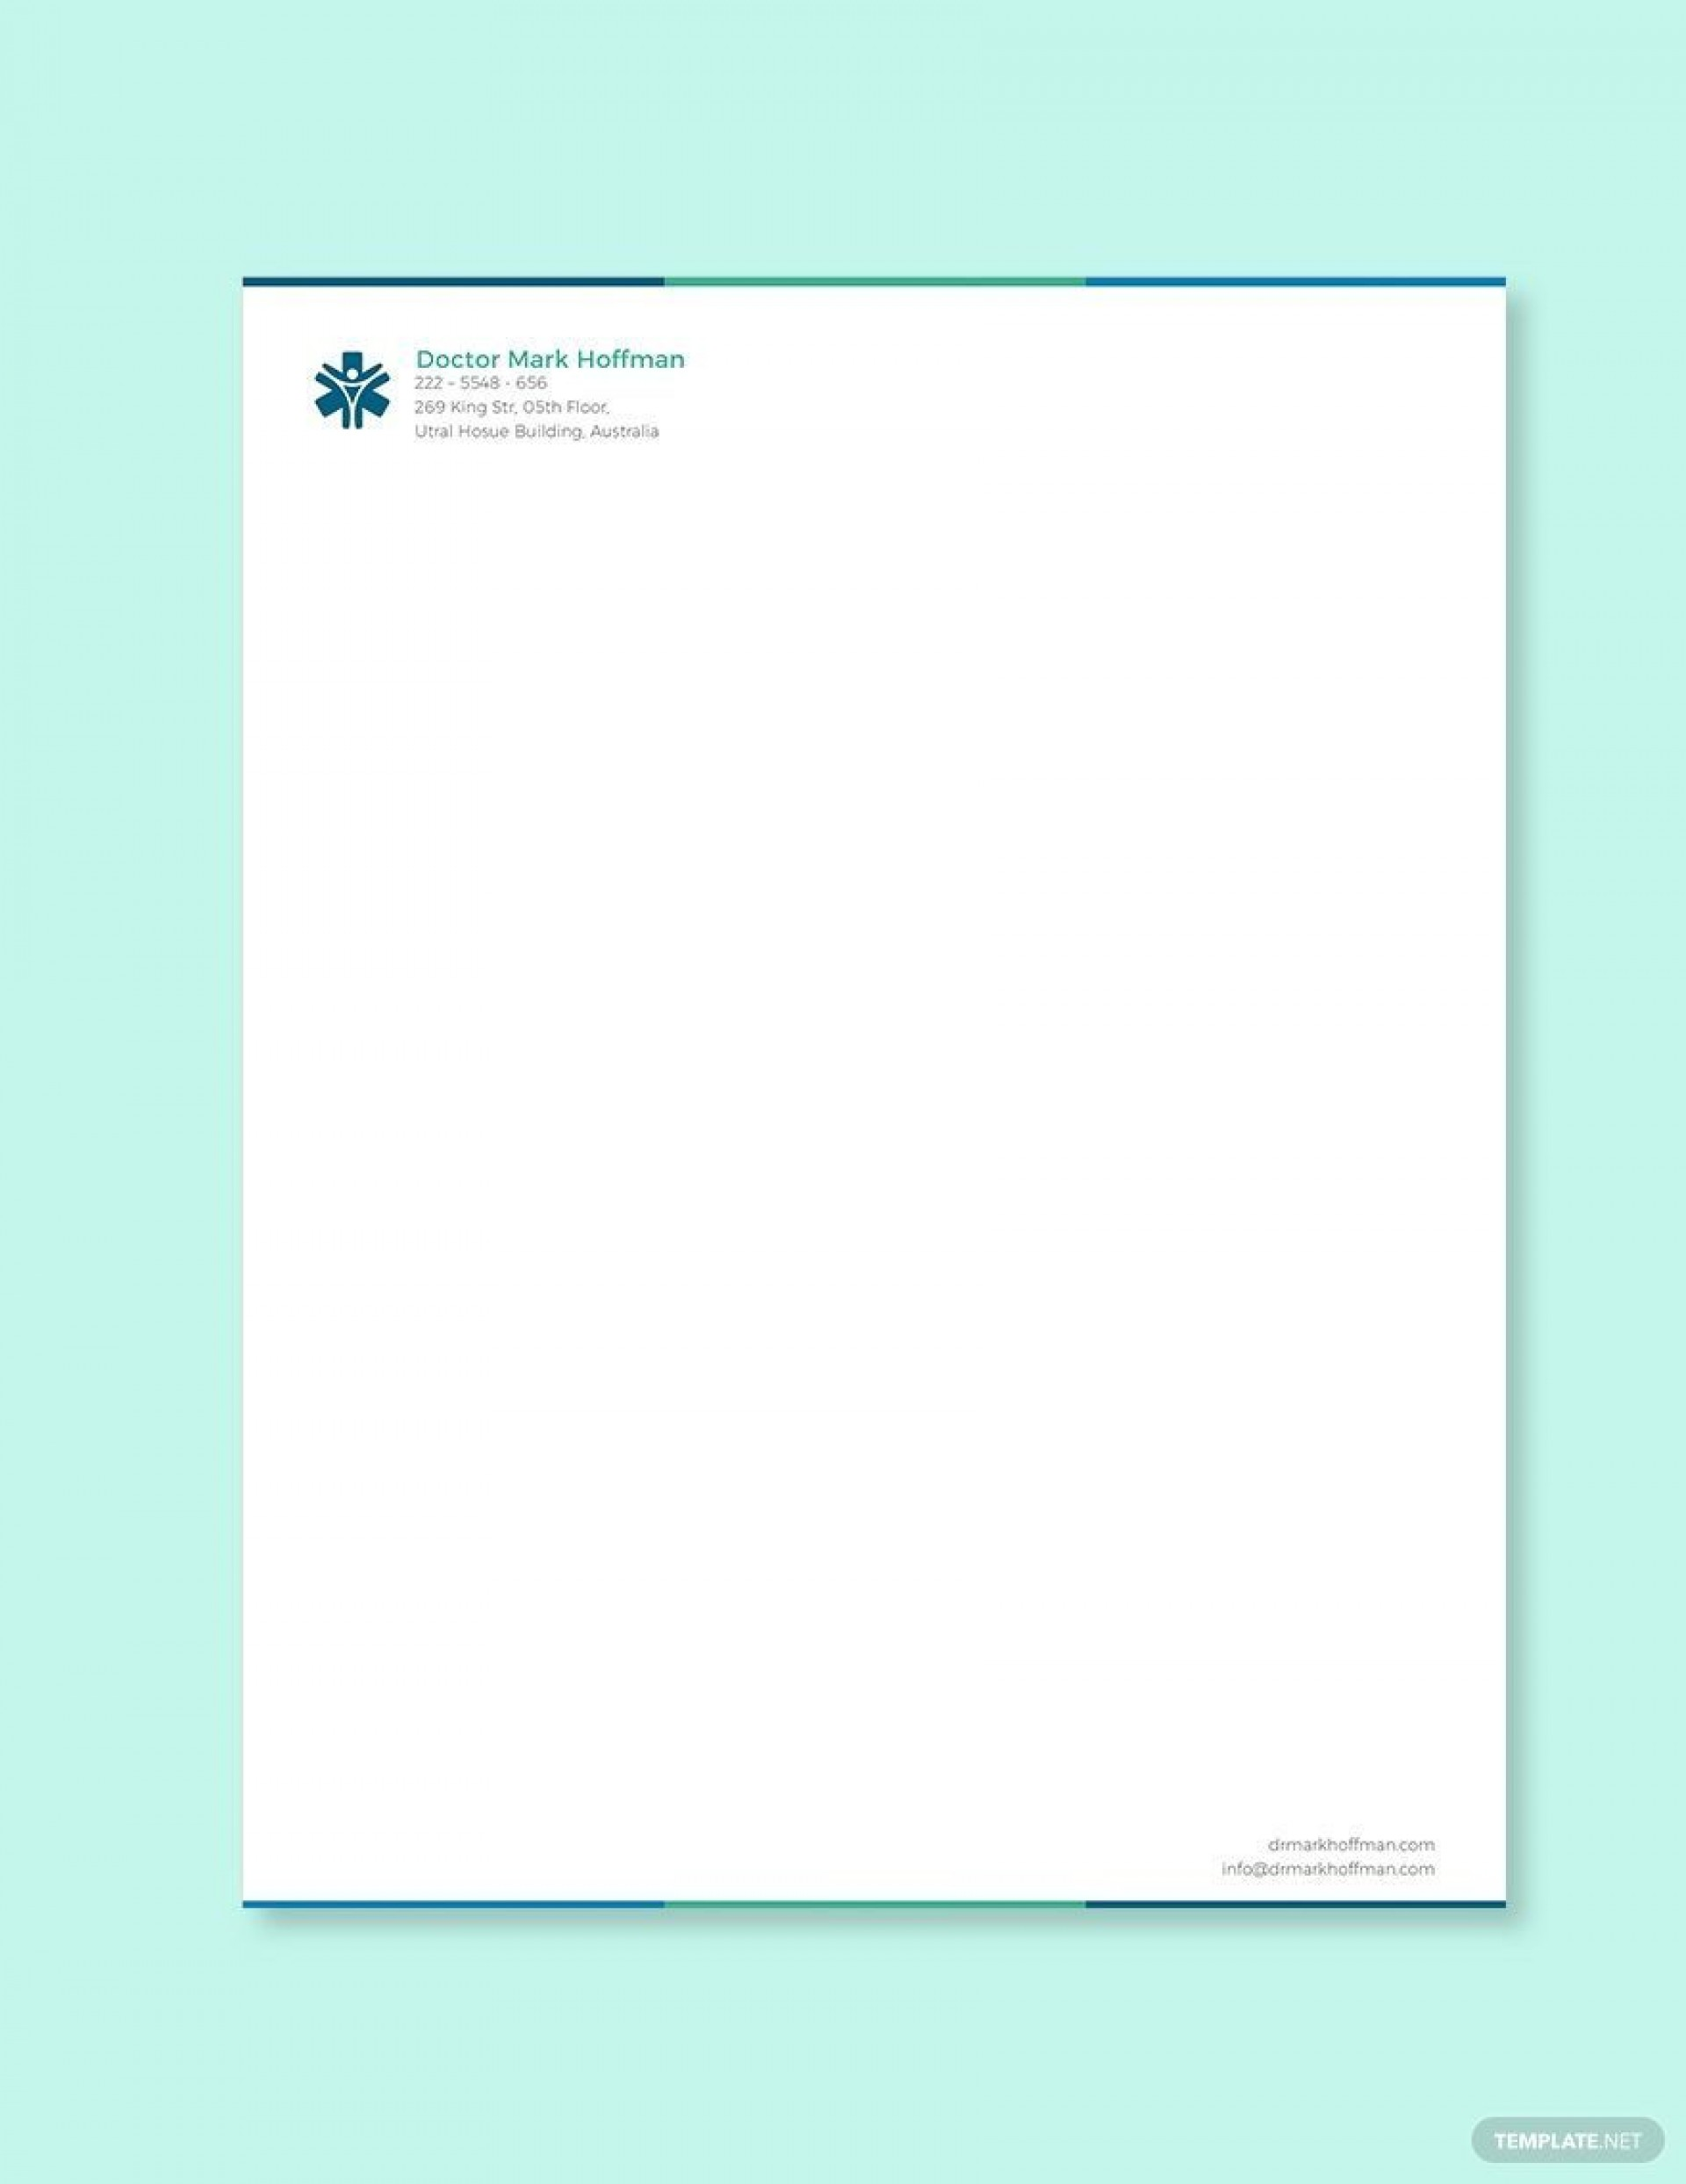 005 Incredible Doctor Letterhead Format In Word Free Download Inspiration  Design1920